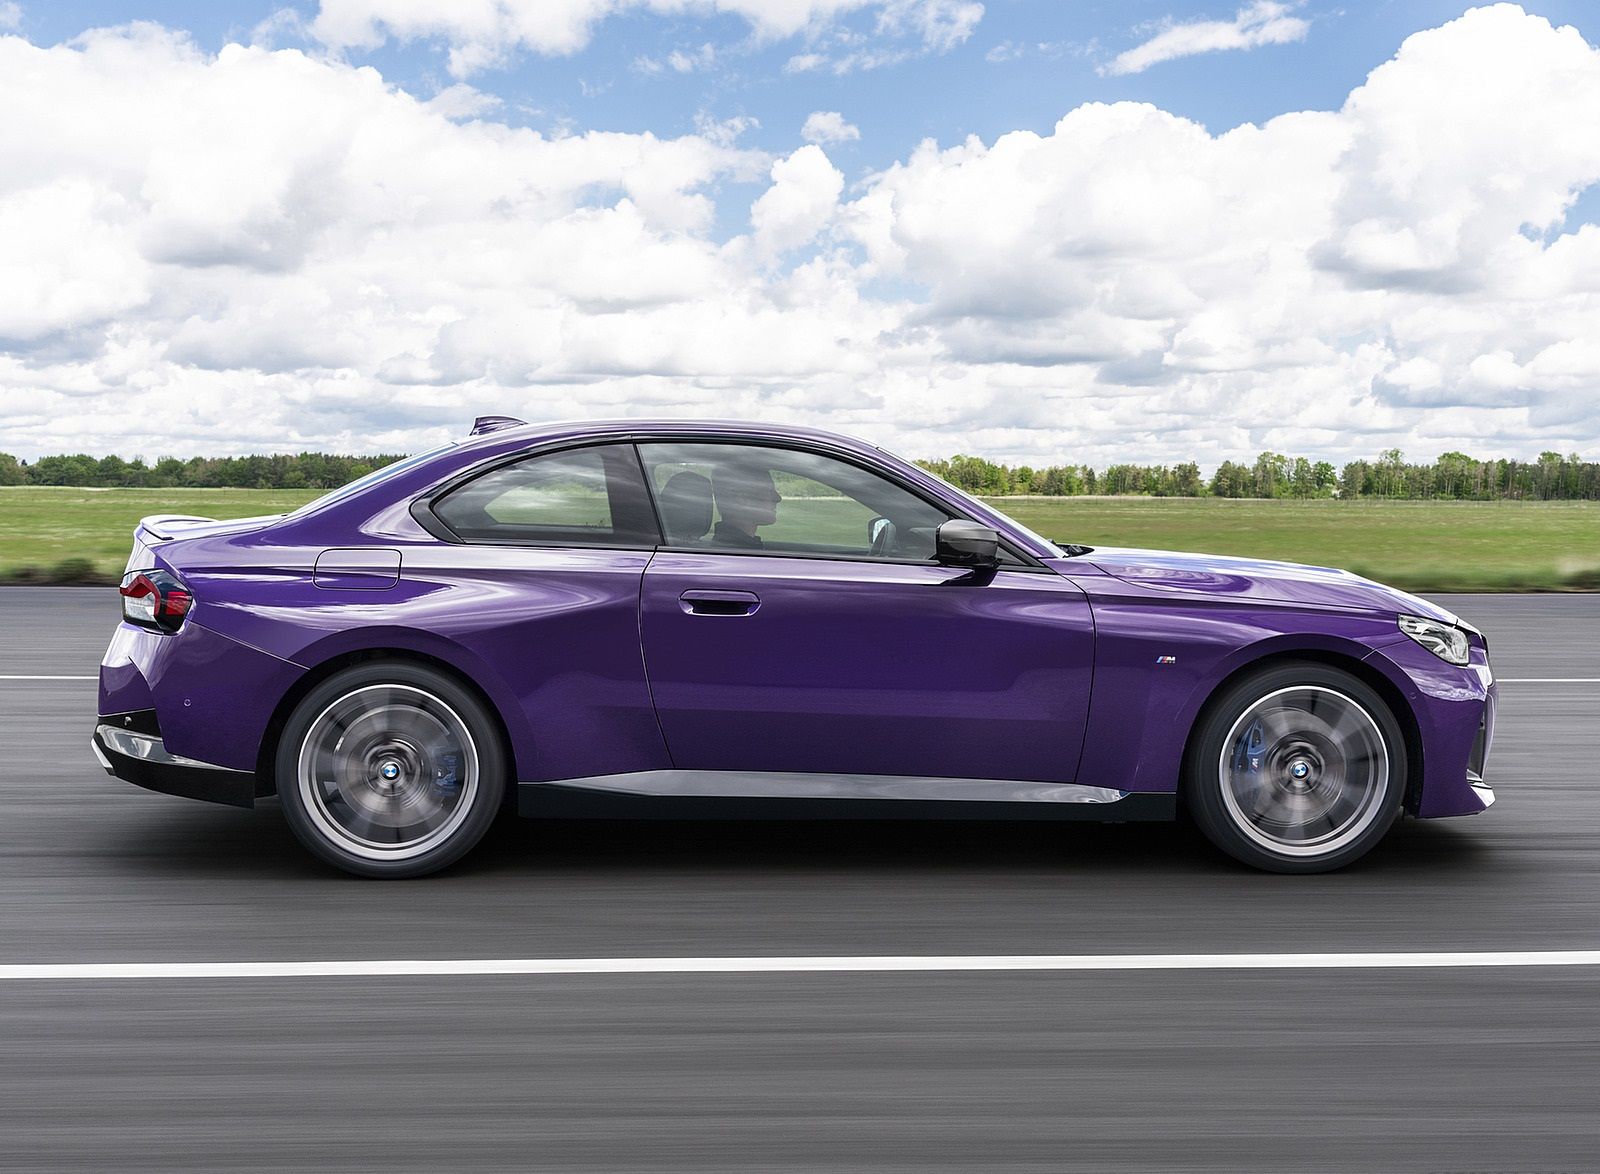 2022 BMW M240i xDrive Coupe Side Wallpapers (10)